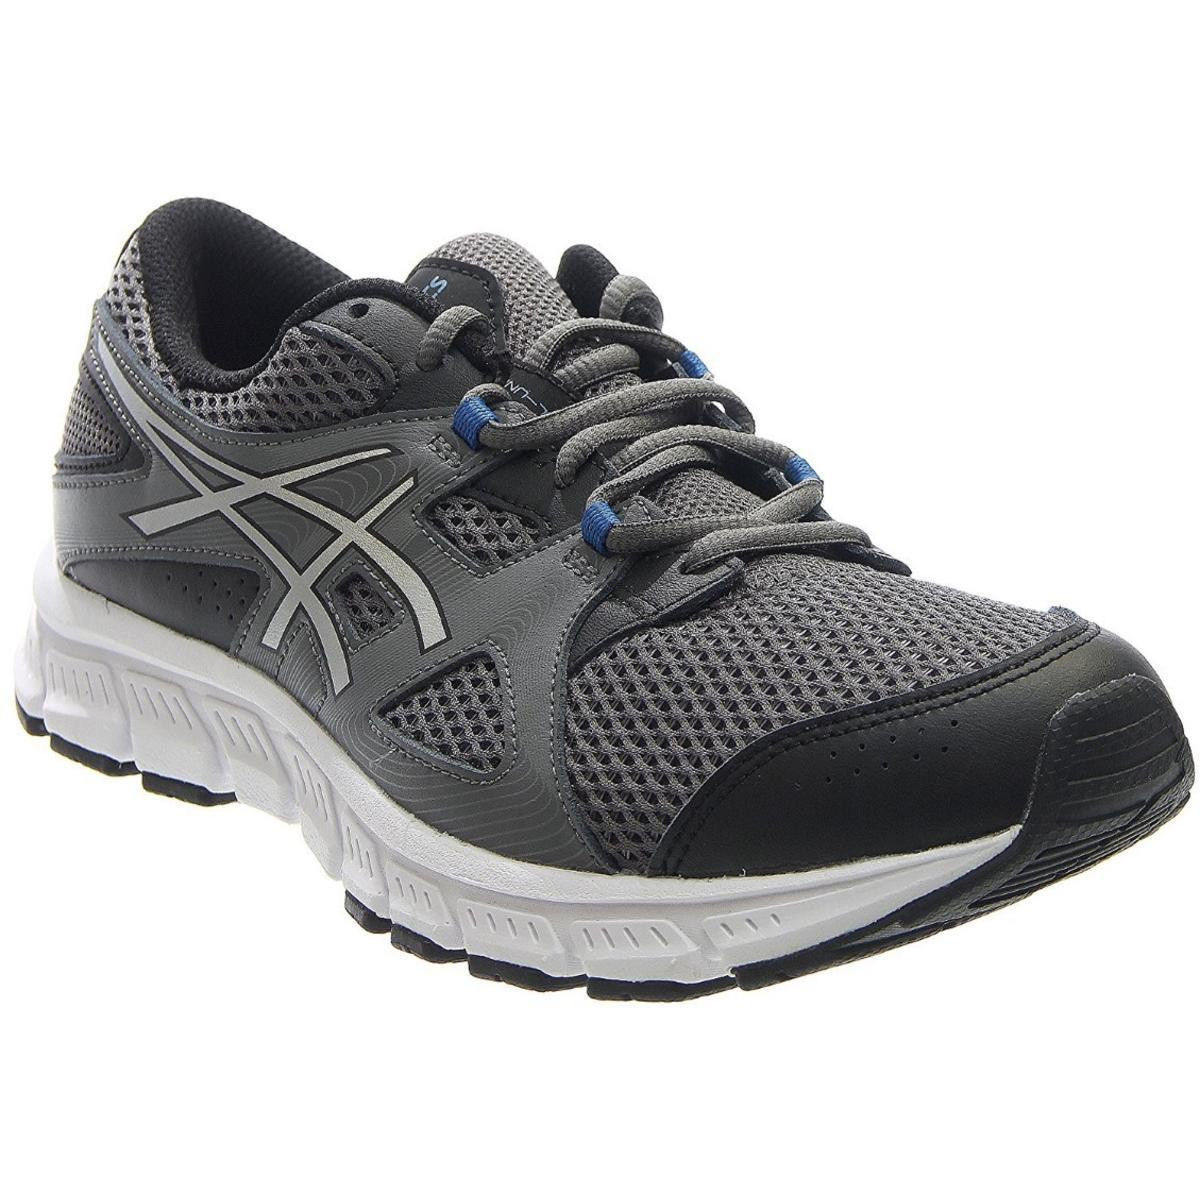 Homme 8 4E 10905 WIDE Homme Asics Gel Unifire TR 2 Unifire et 50 articles similaires 9659902 - christopherbooneavalere.website